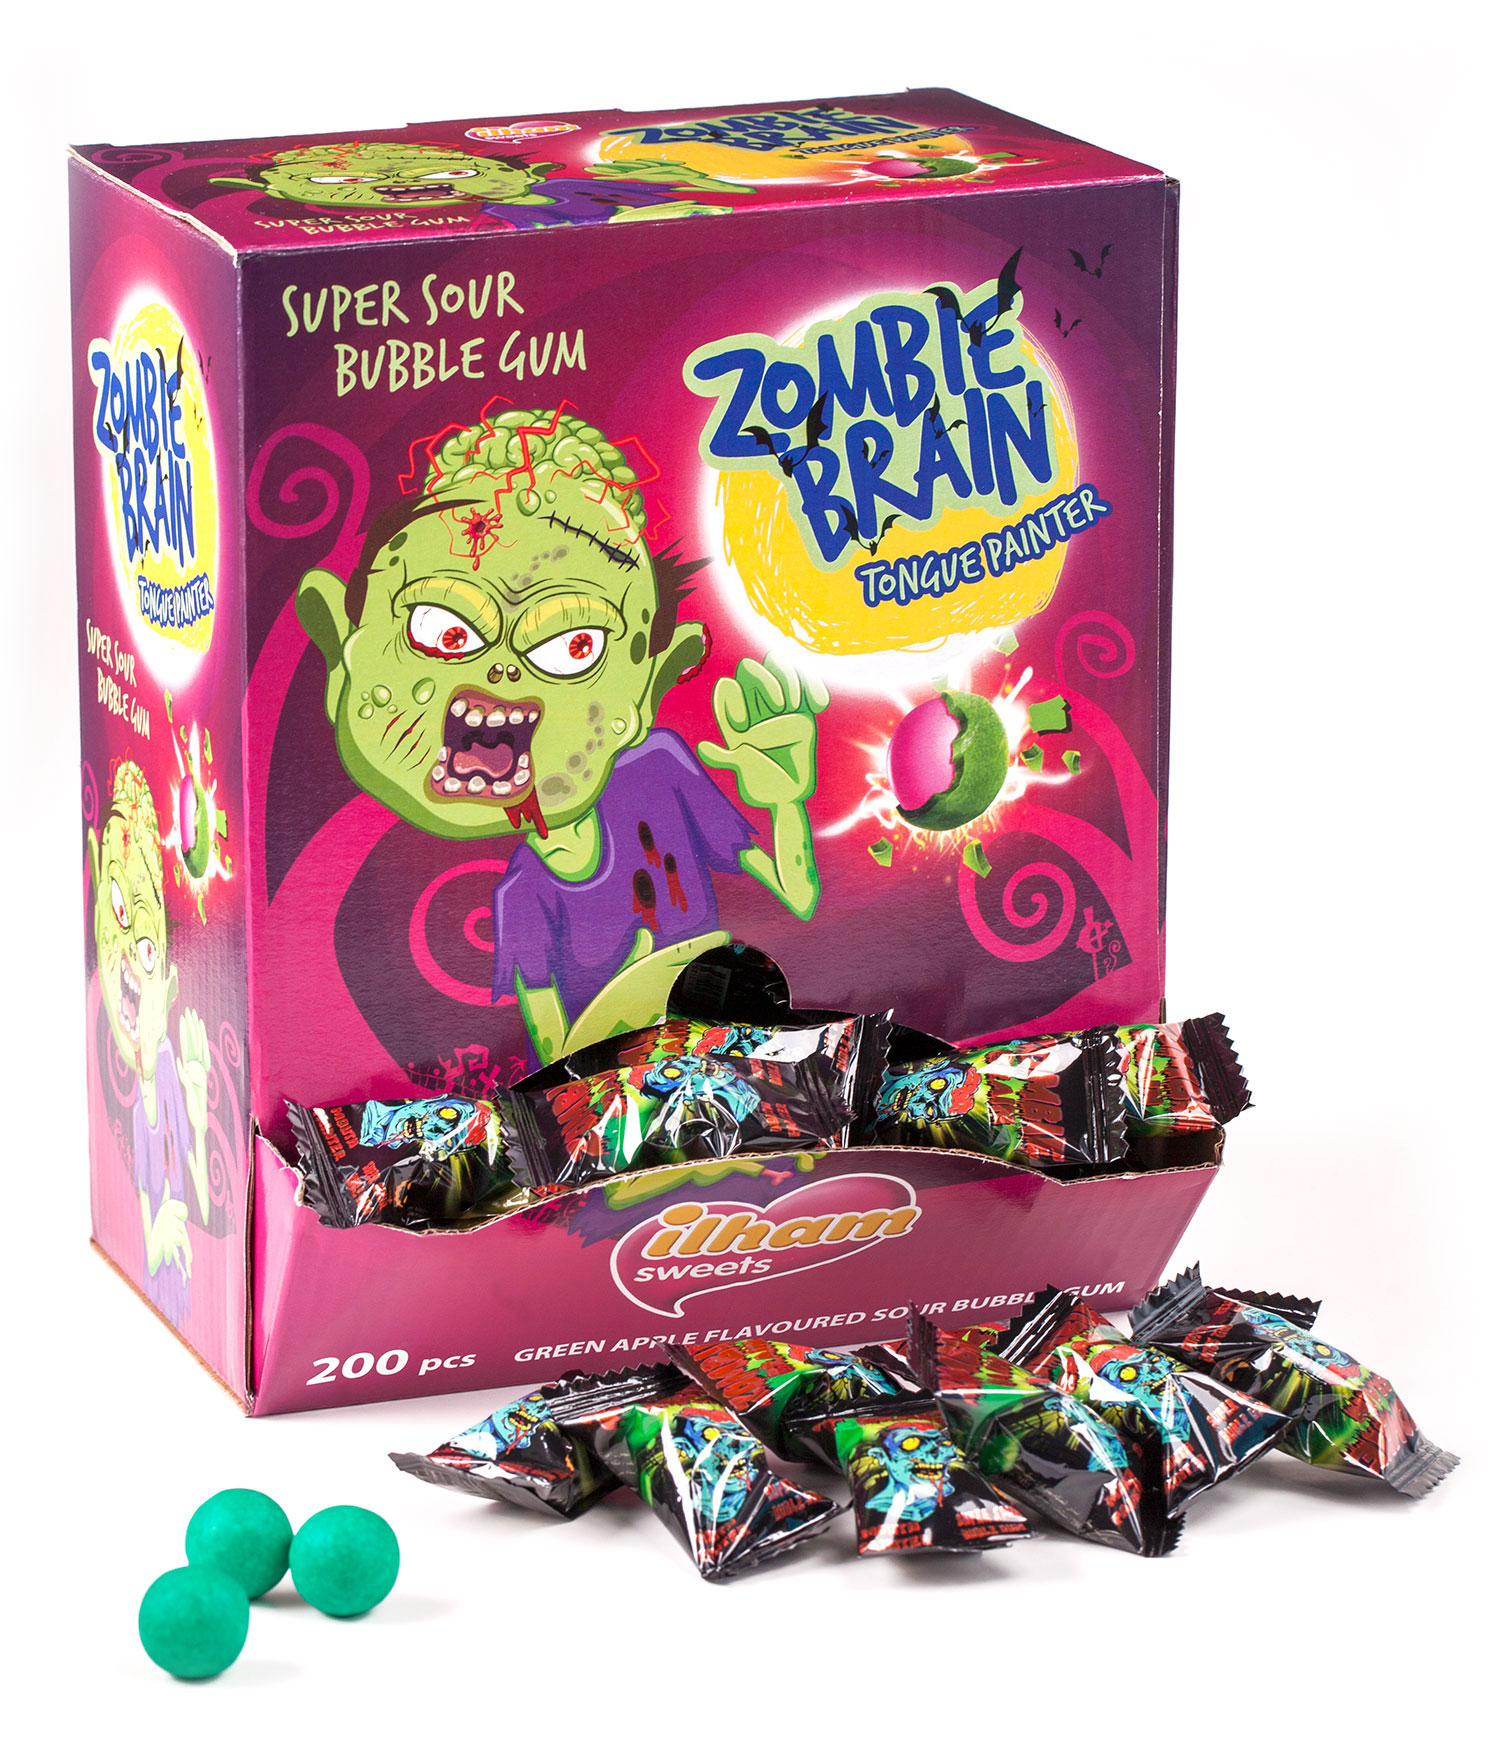 ZOMBIE BRAIN EXTREME SOUR MOUTH PAINTER